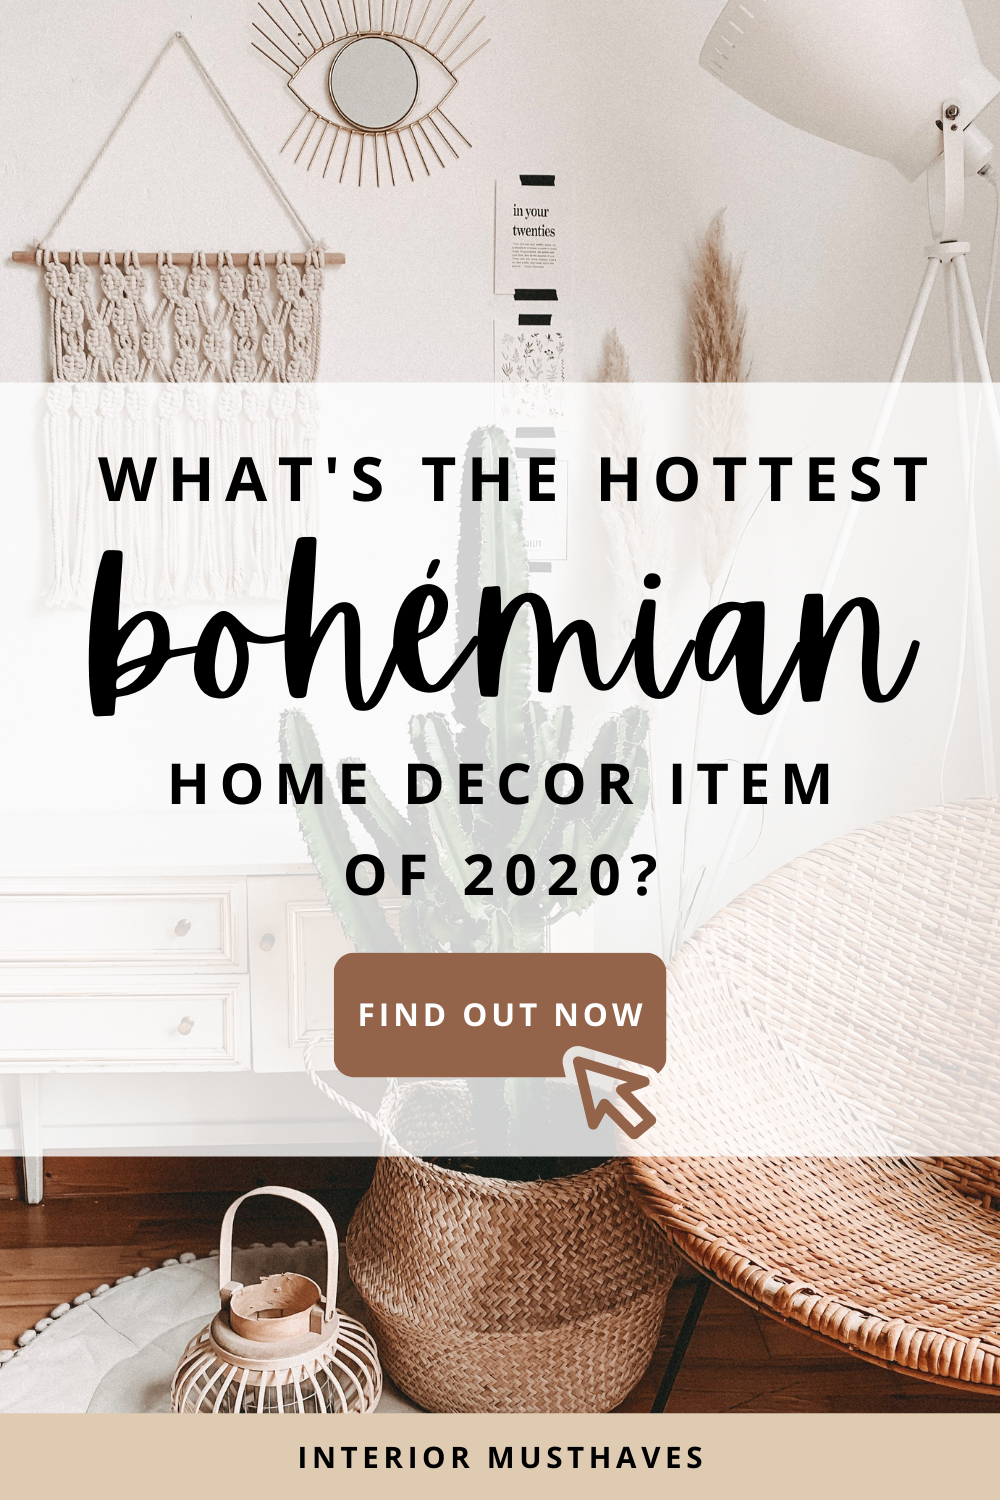 Are you looking for the hottest bohemian home decor item that creates an instant boho look? Click to find out! #bohemianinterior #bohemiandecor #bohemianinspo #decorlover #homedecor #bohodecor #bohodecoration #bohemiandecoration #interiordecor #bohointerior #bohemianinterior